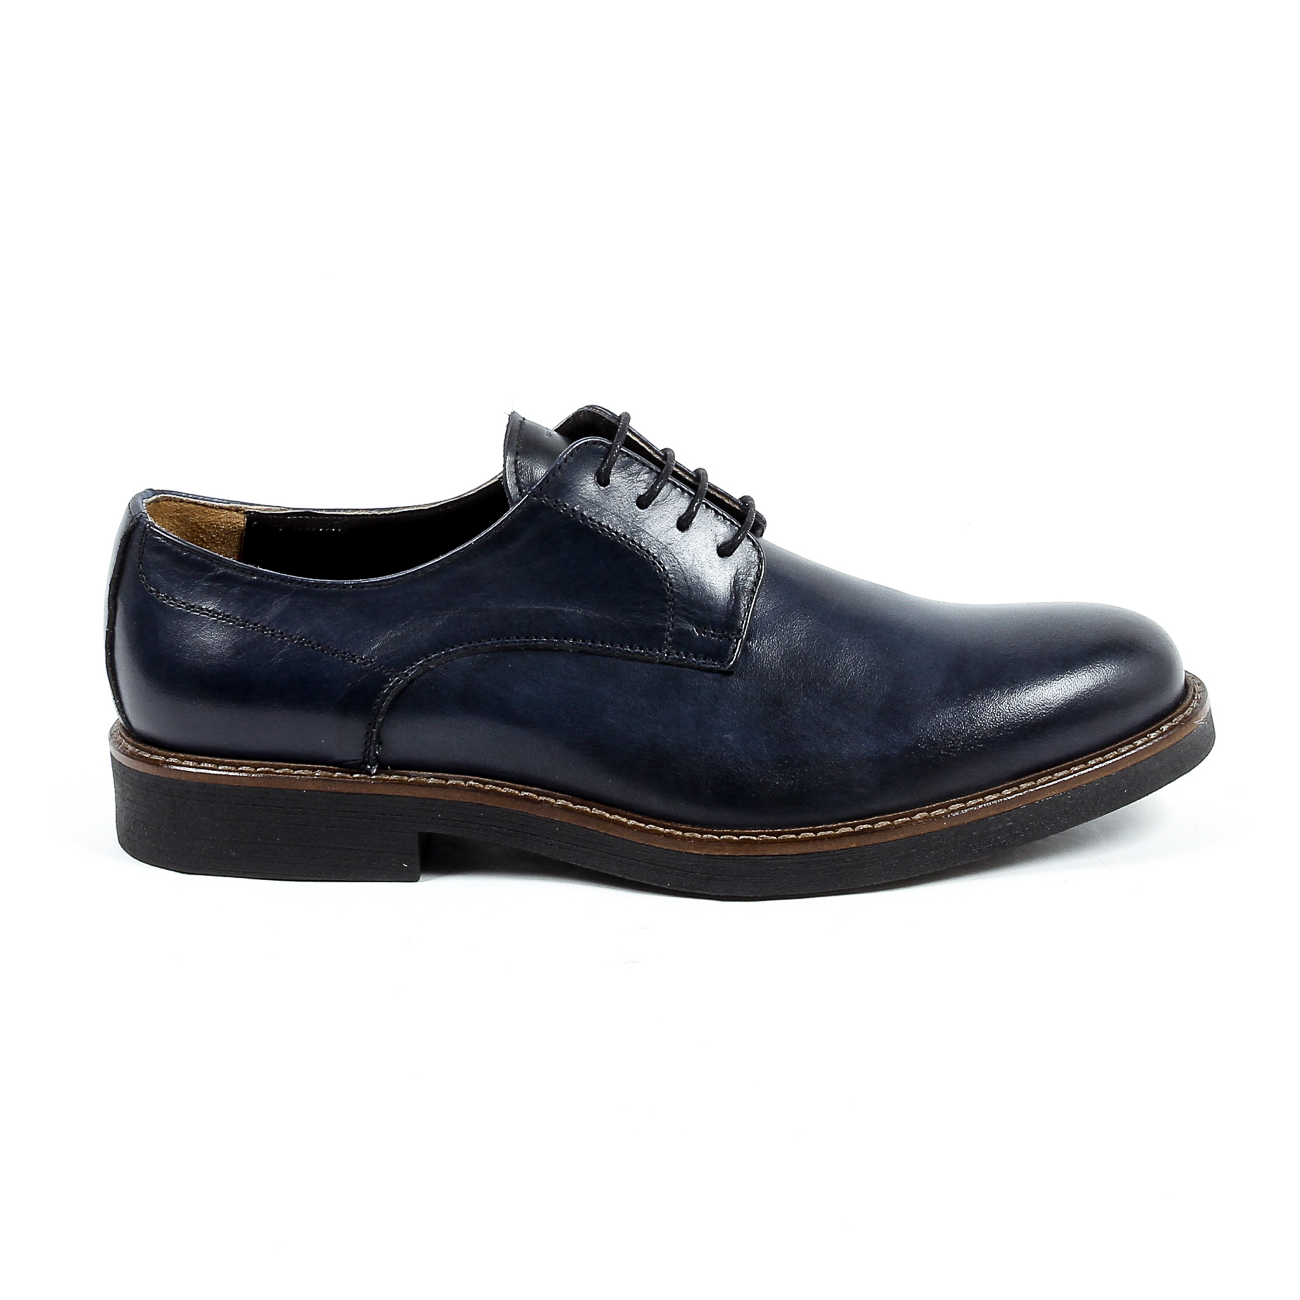 v 1969 italia mens lace up shoe buy2bee